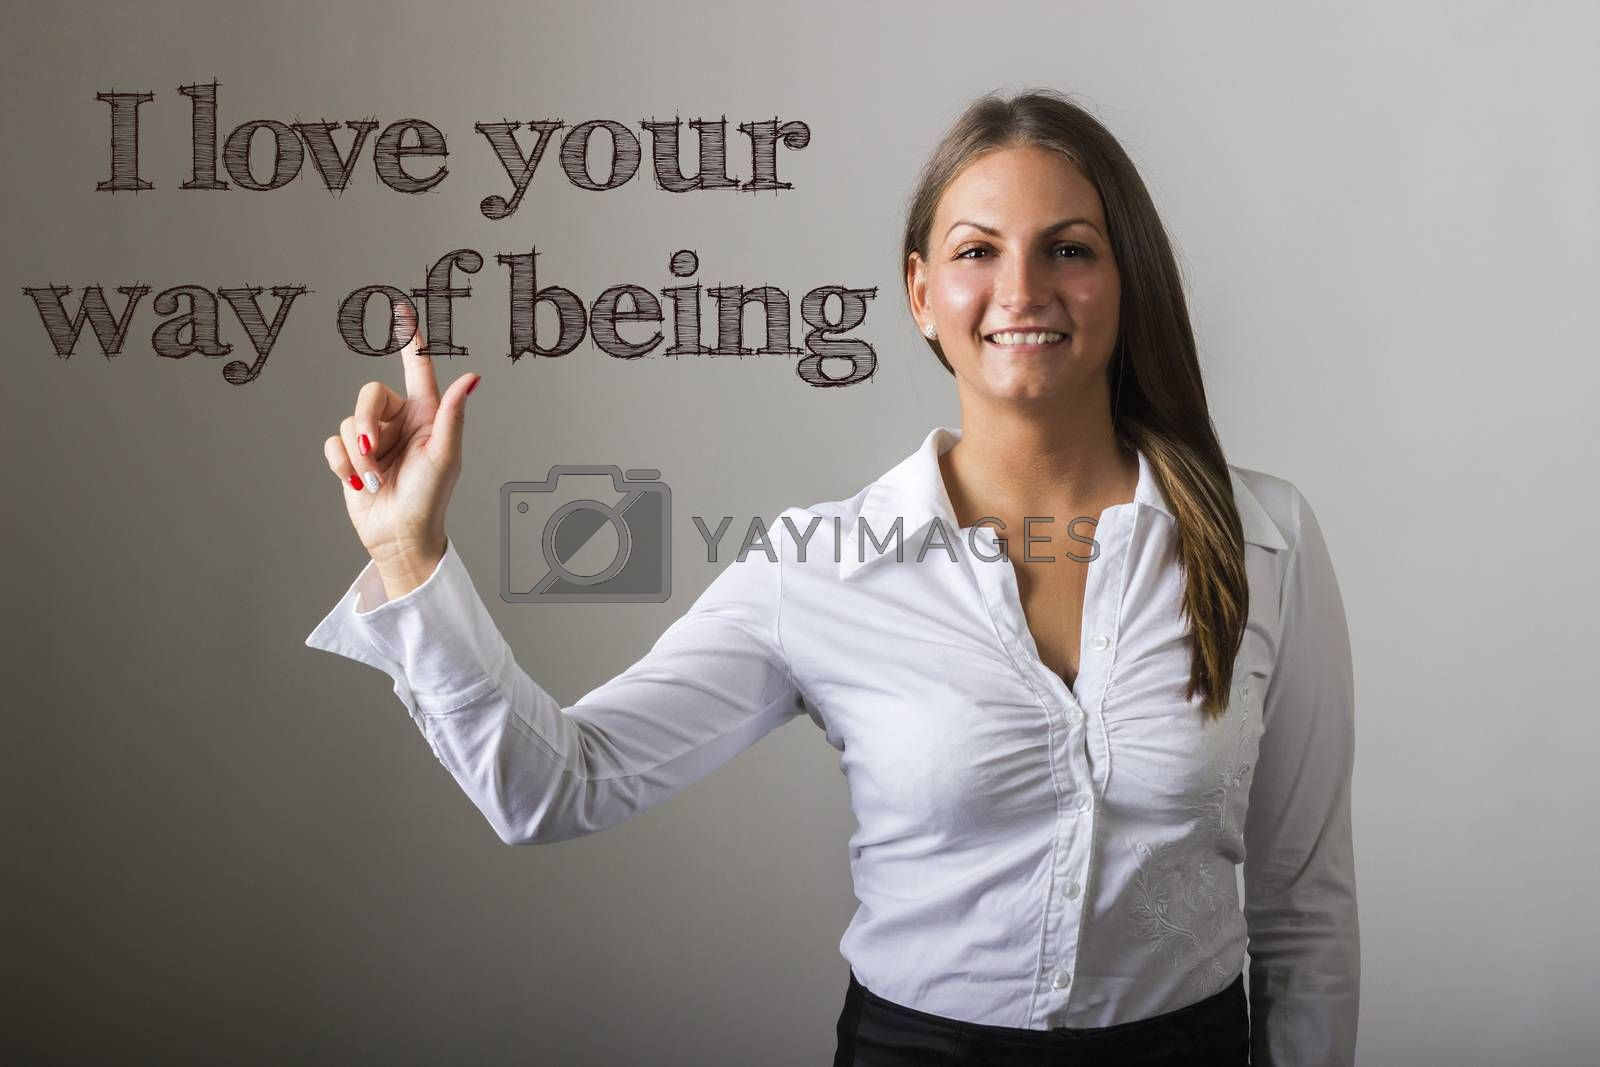 I love your way of being - Beautiful girl touching text on transparent surface - horizontal image